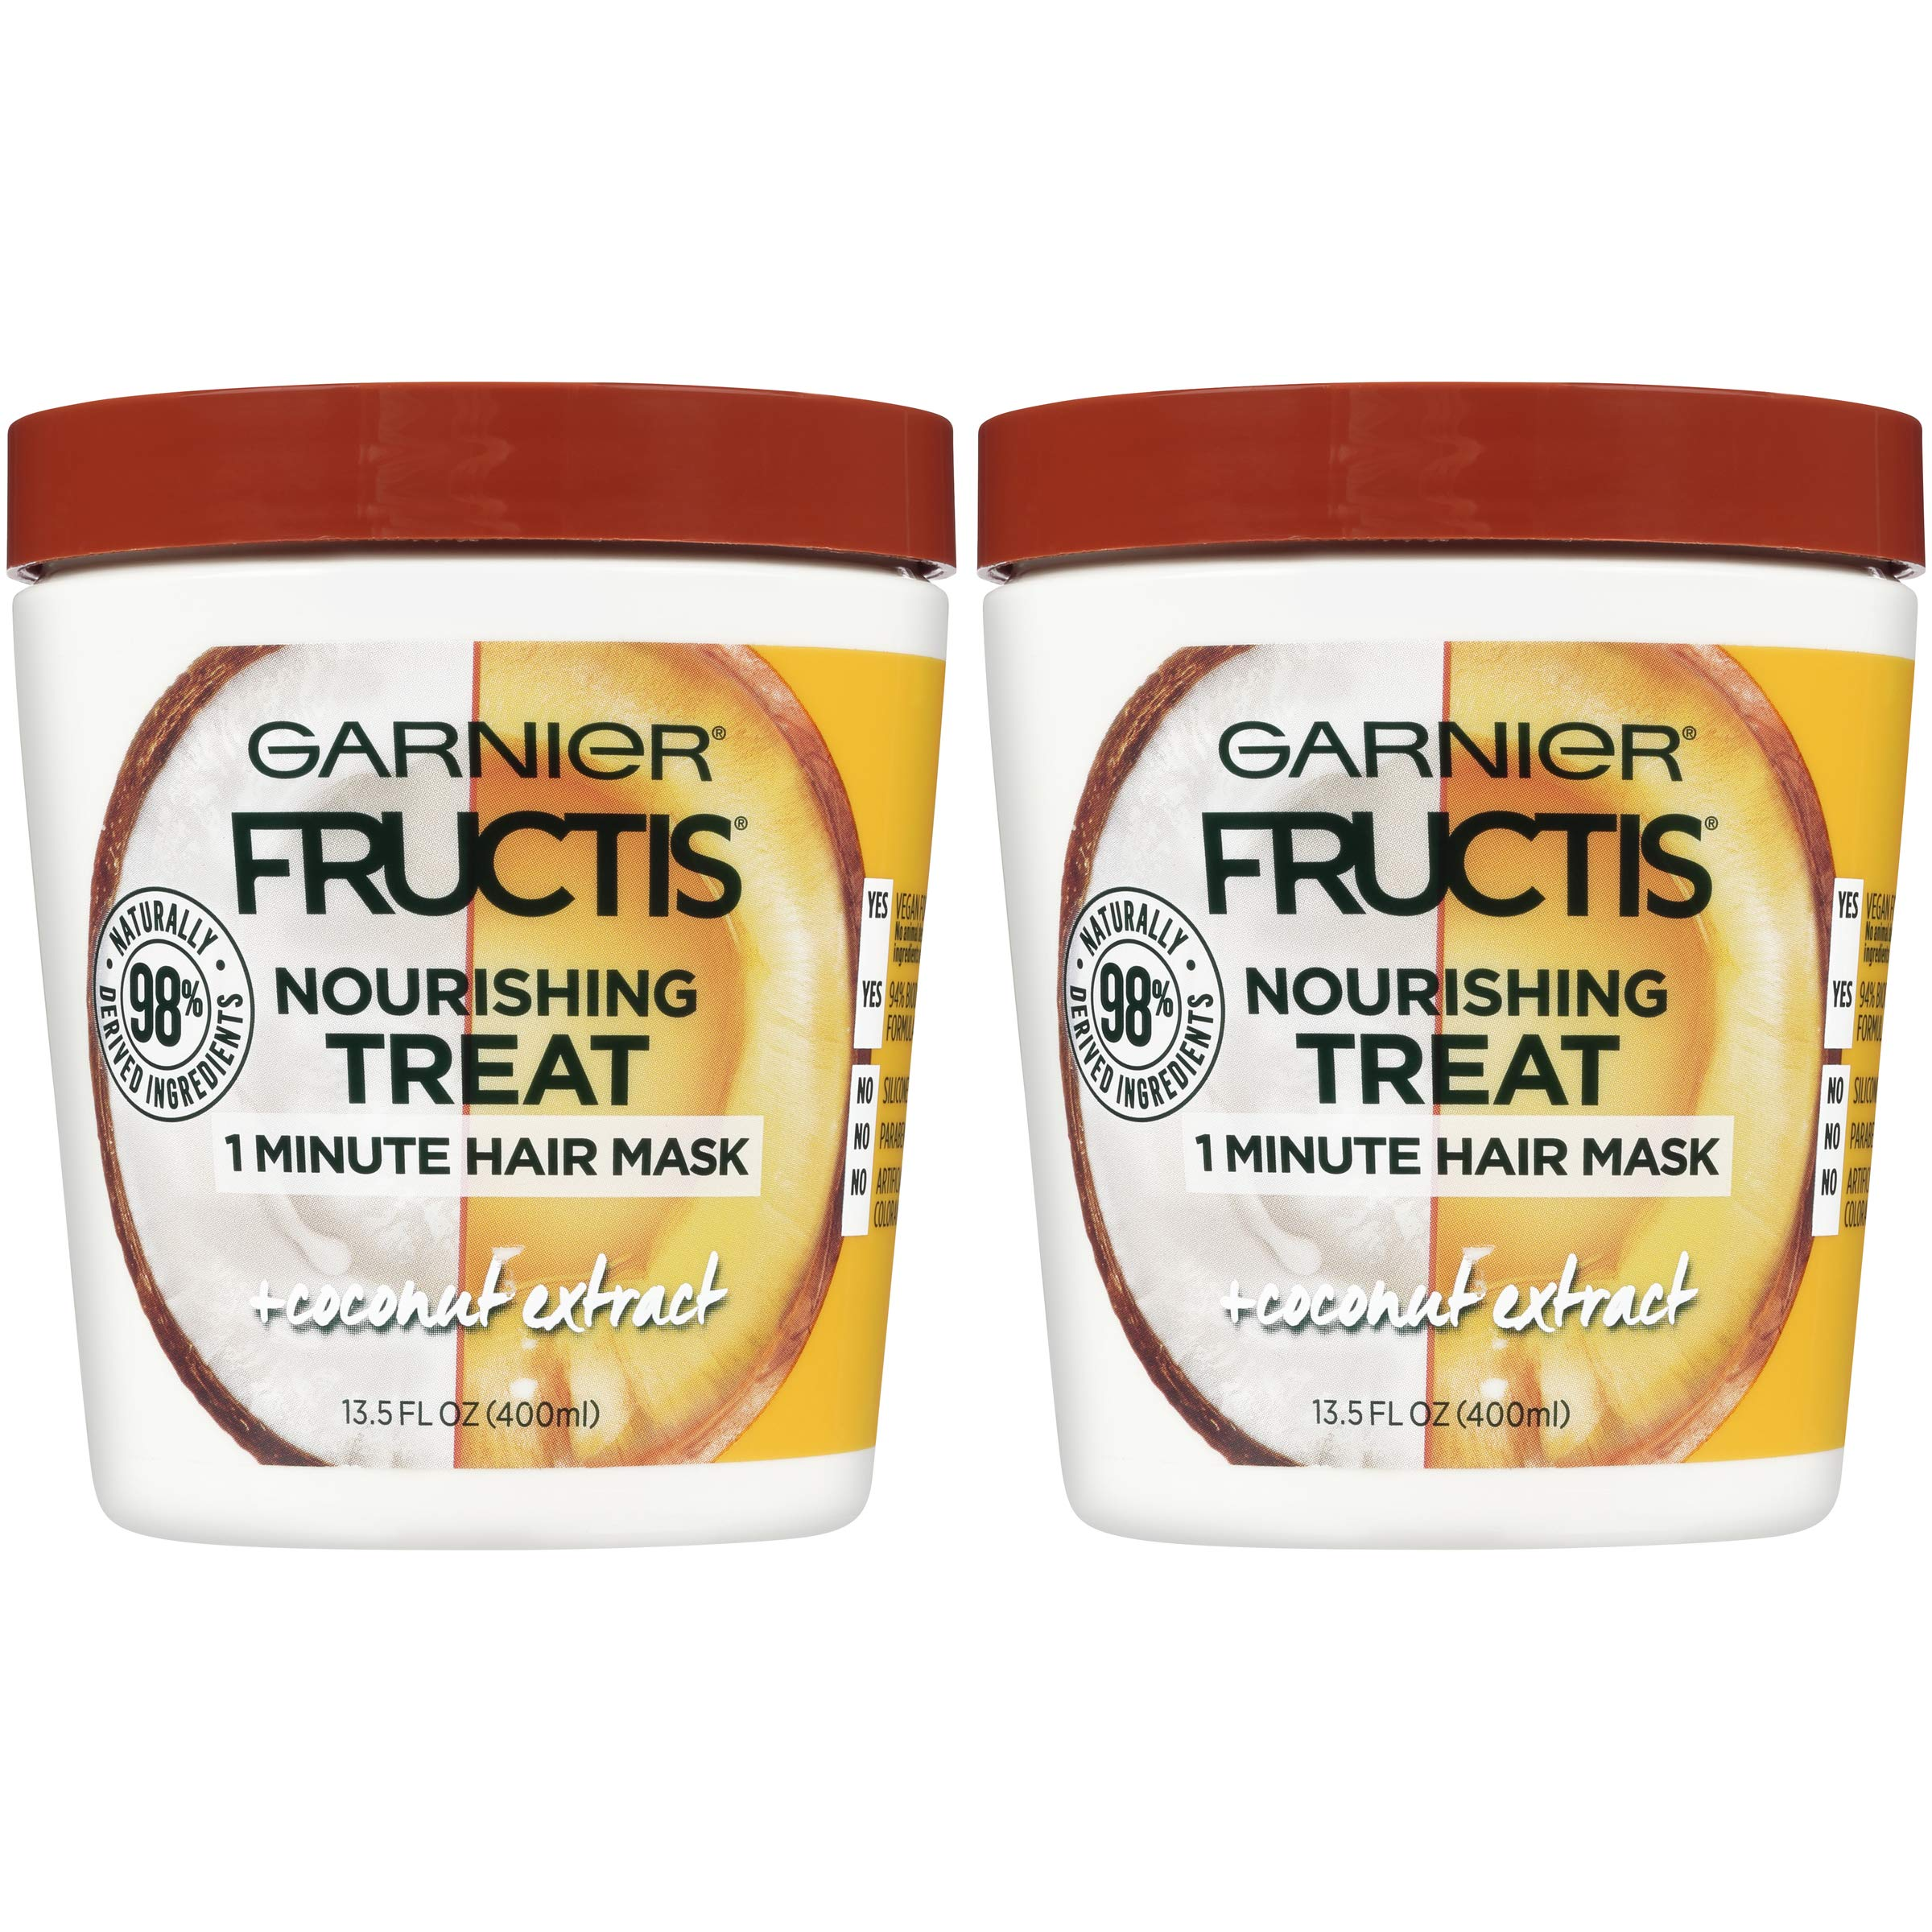 Garnier Fructis Nourishing Treat 1 Minute Hair Mask with Moisturizing Coconut Extract 13.5 Fl Oz (Pack of 2) (Packaging May Vary)